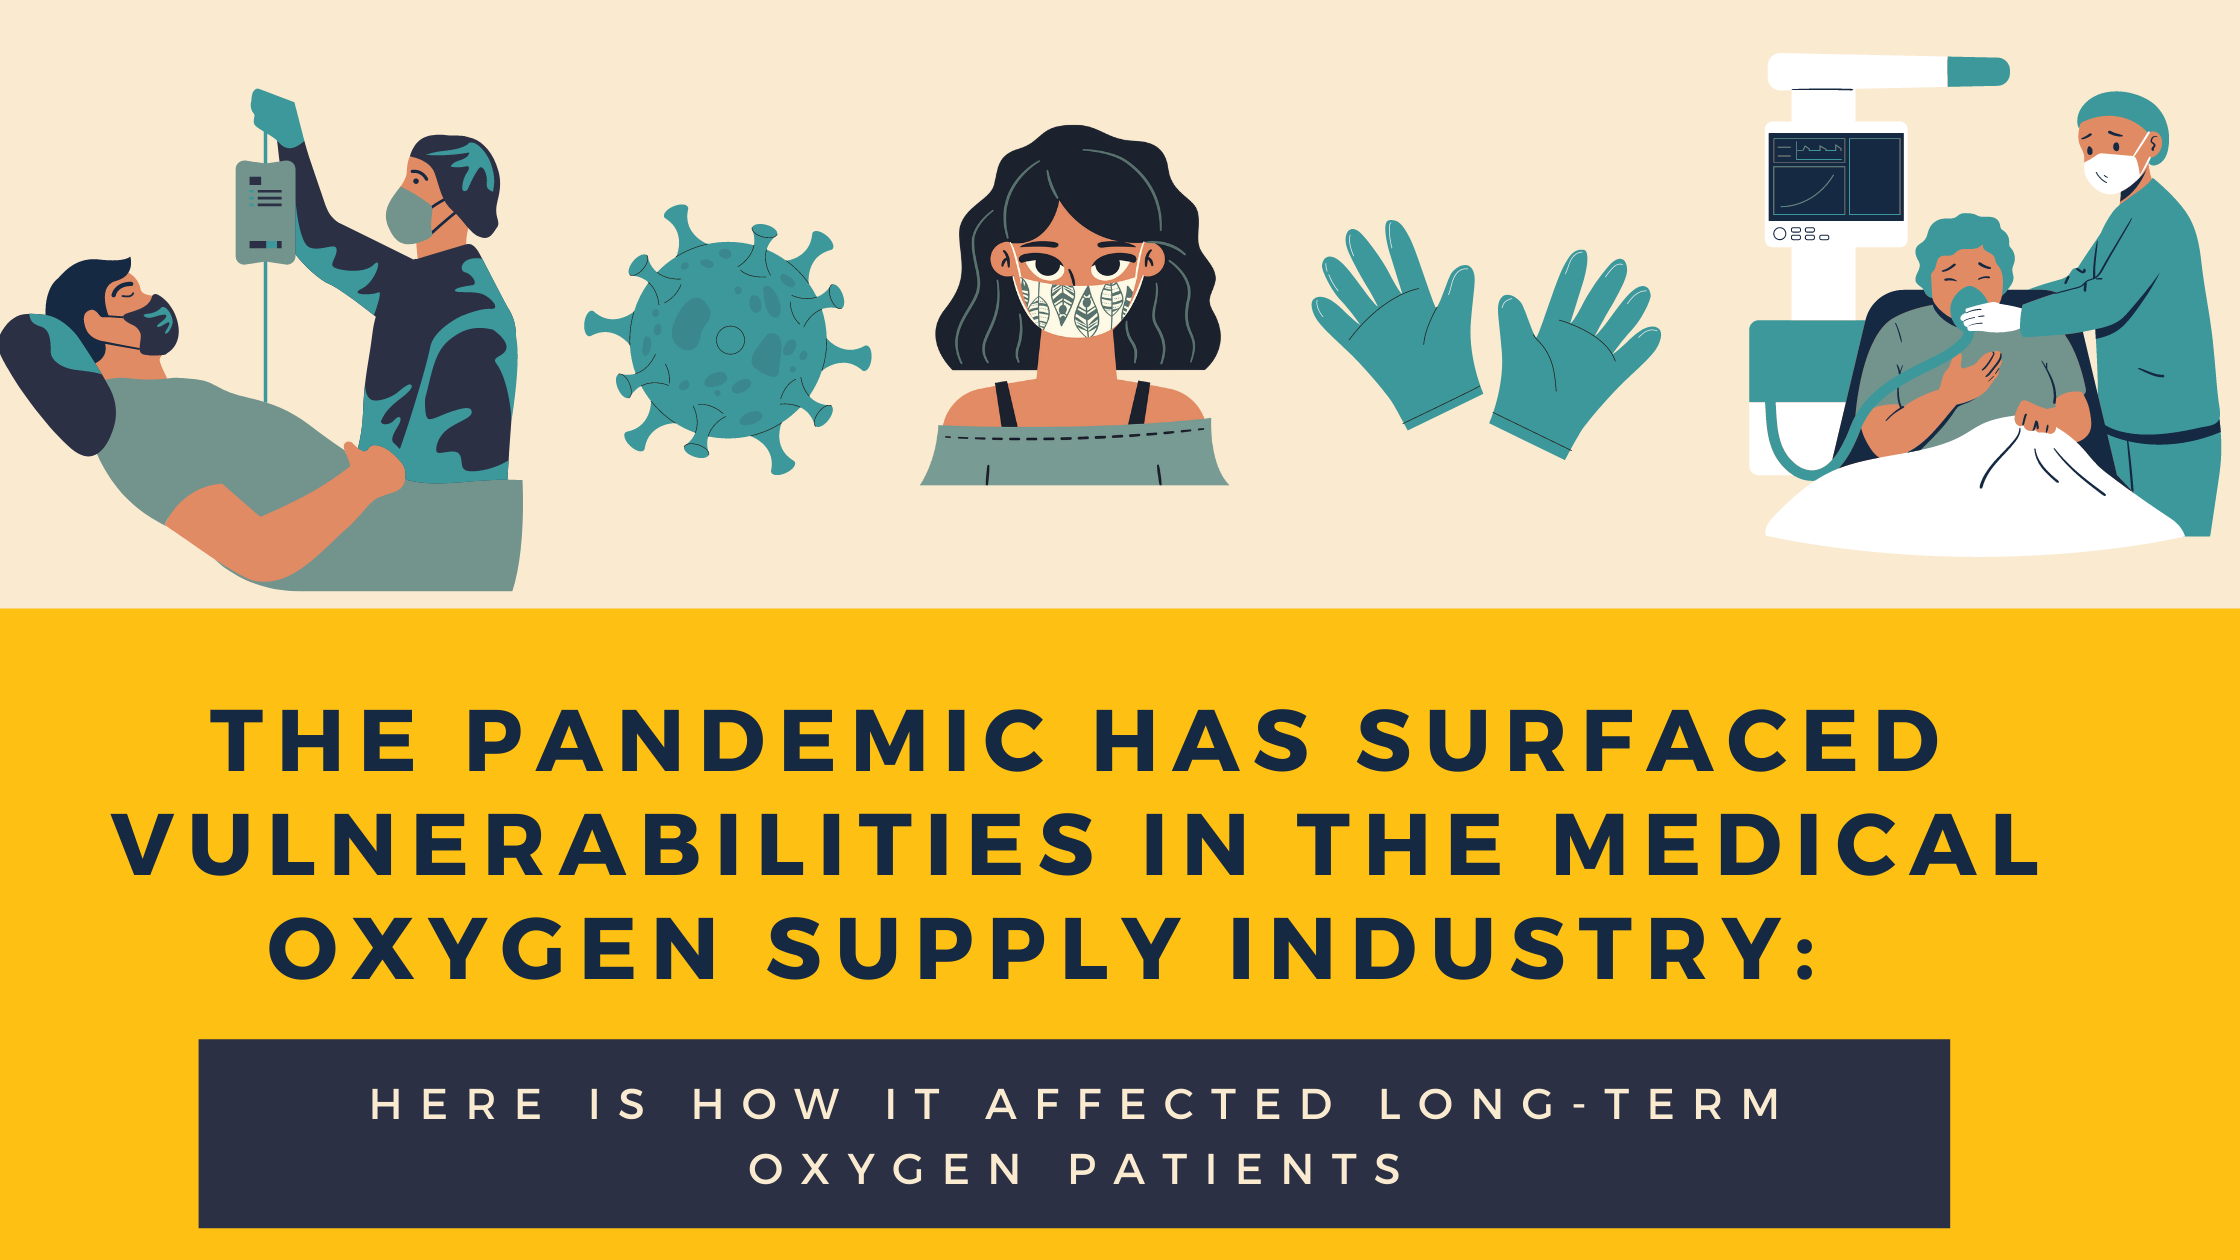 The Pandemic has Surfaced Vulnerabilities in Medical Oxygen Supply Industry